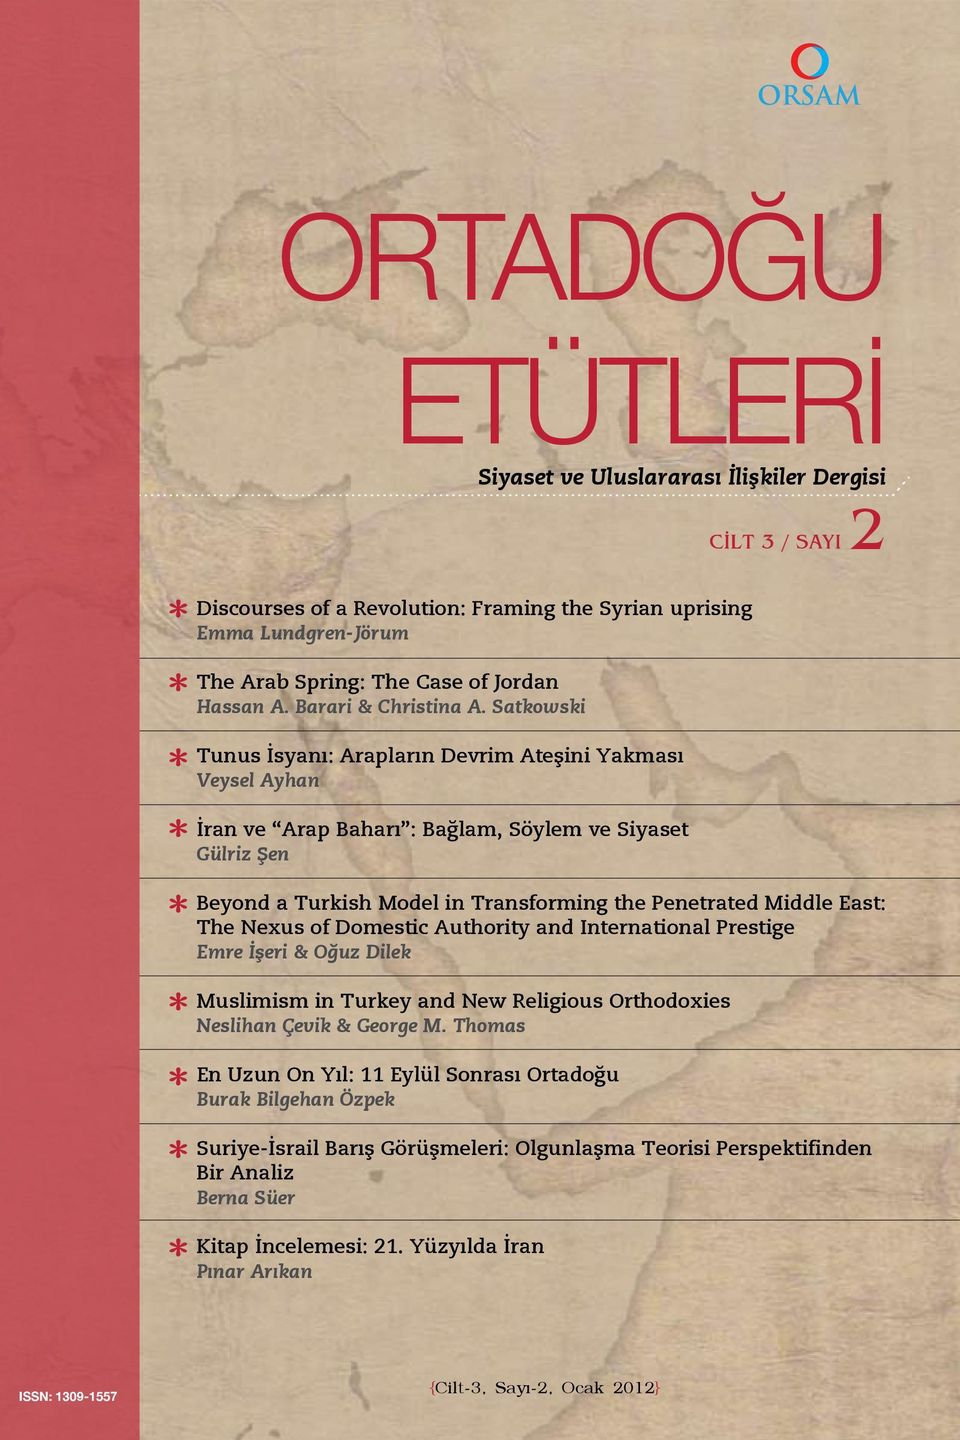 Satkowski Tunus İsyanı: Arapların Devrim Ateşini Yakması Veysel Ayhan İran ve Arap Baharı : Bağlam, Söylem ve Siyaset Gülriz Şen Beyond a Turkish Model in Transforming the Penetrated Middle East: The